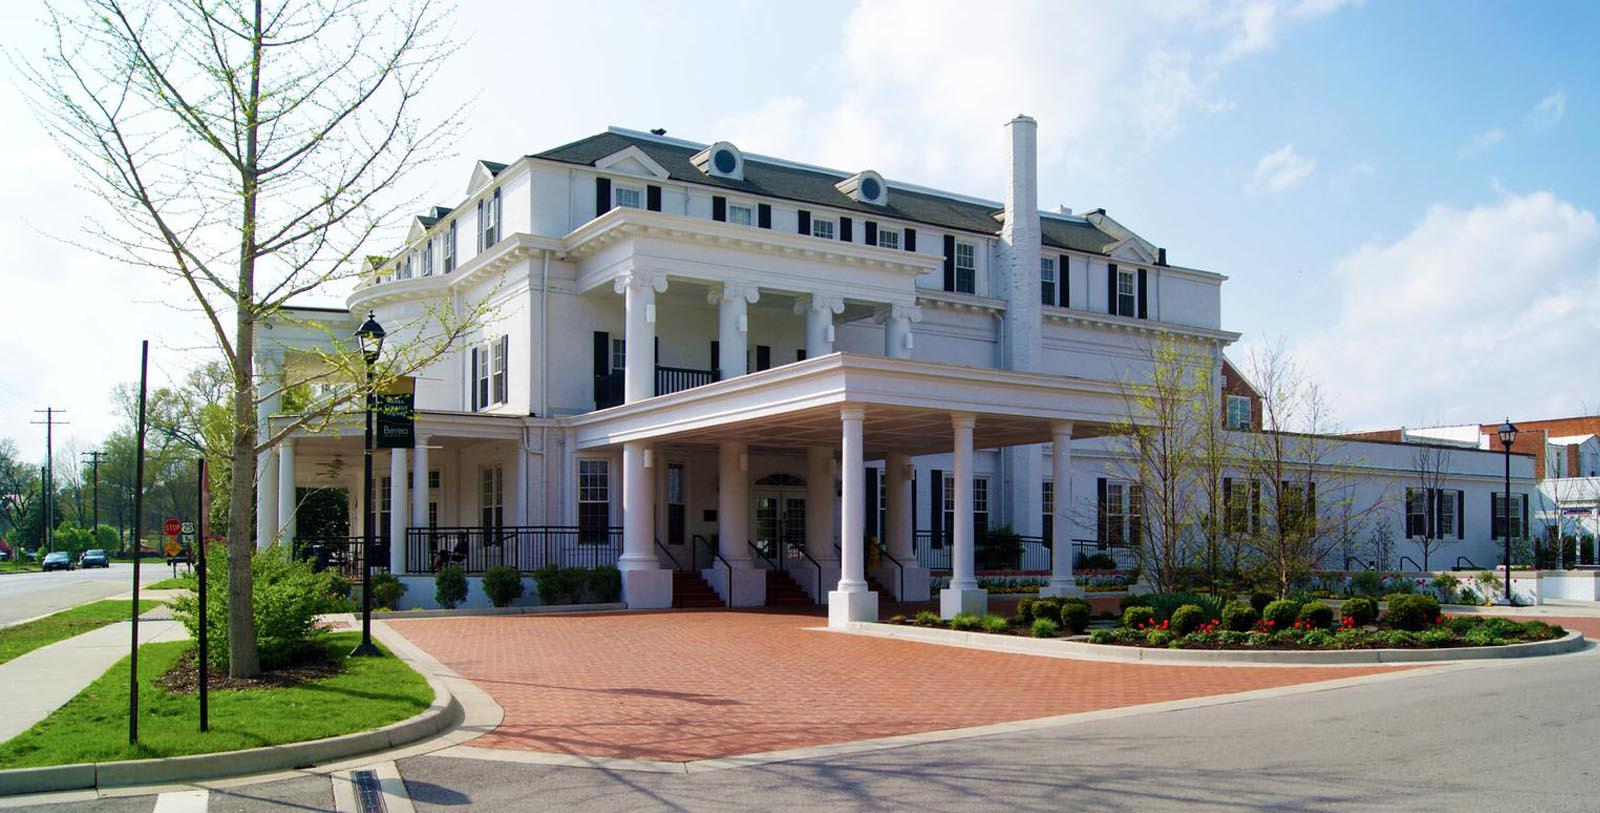 Boone Tavern Hotel of Berea College